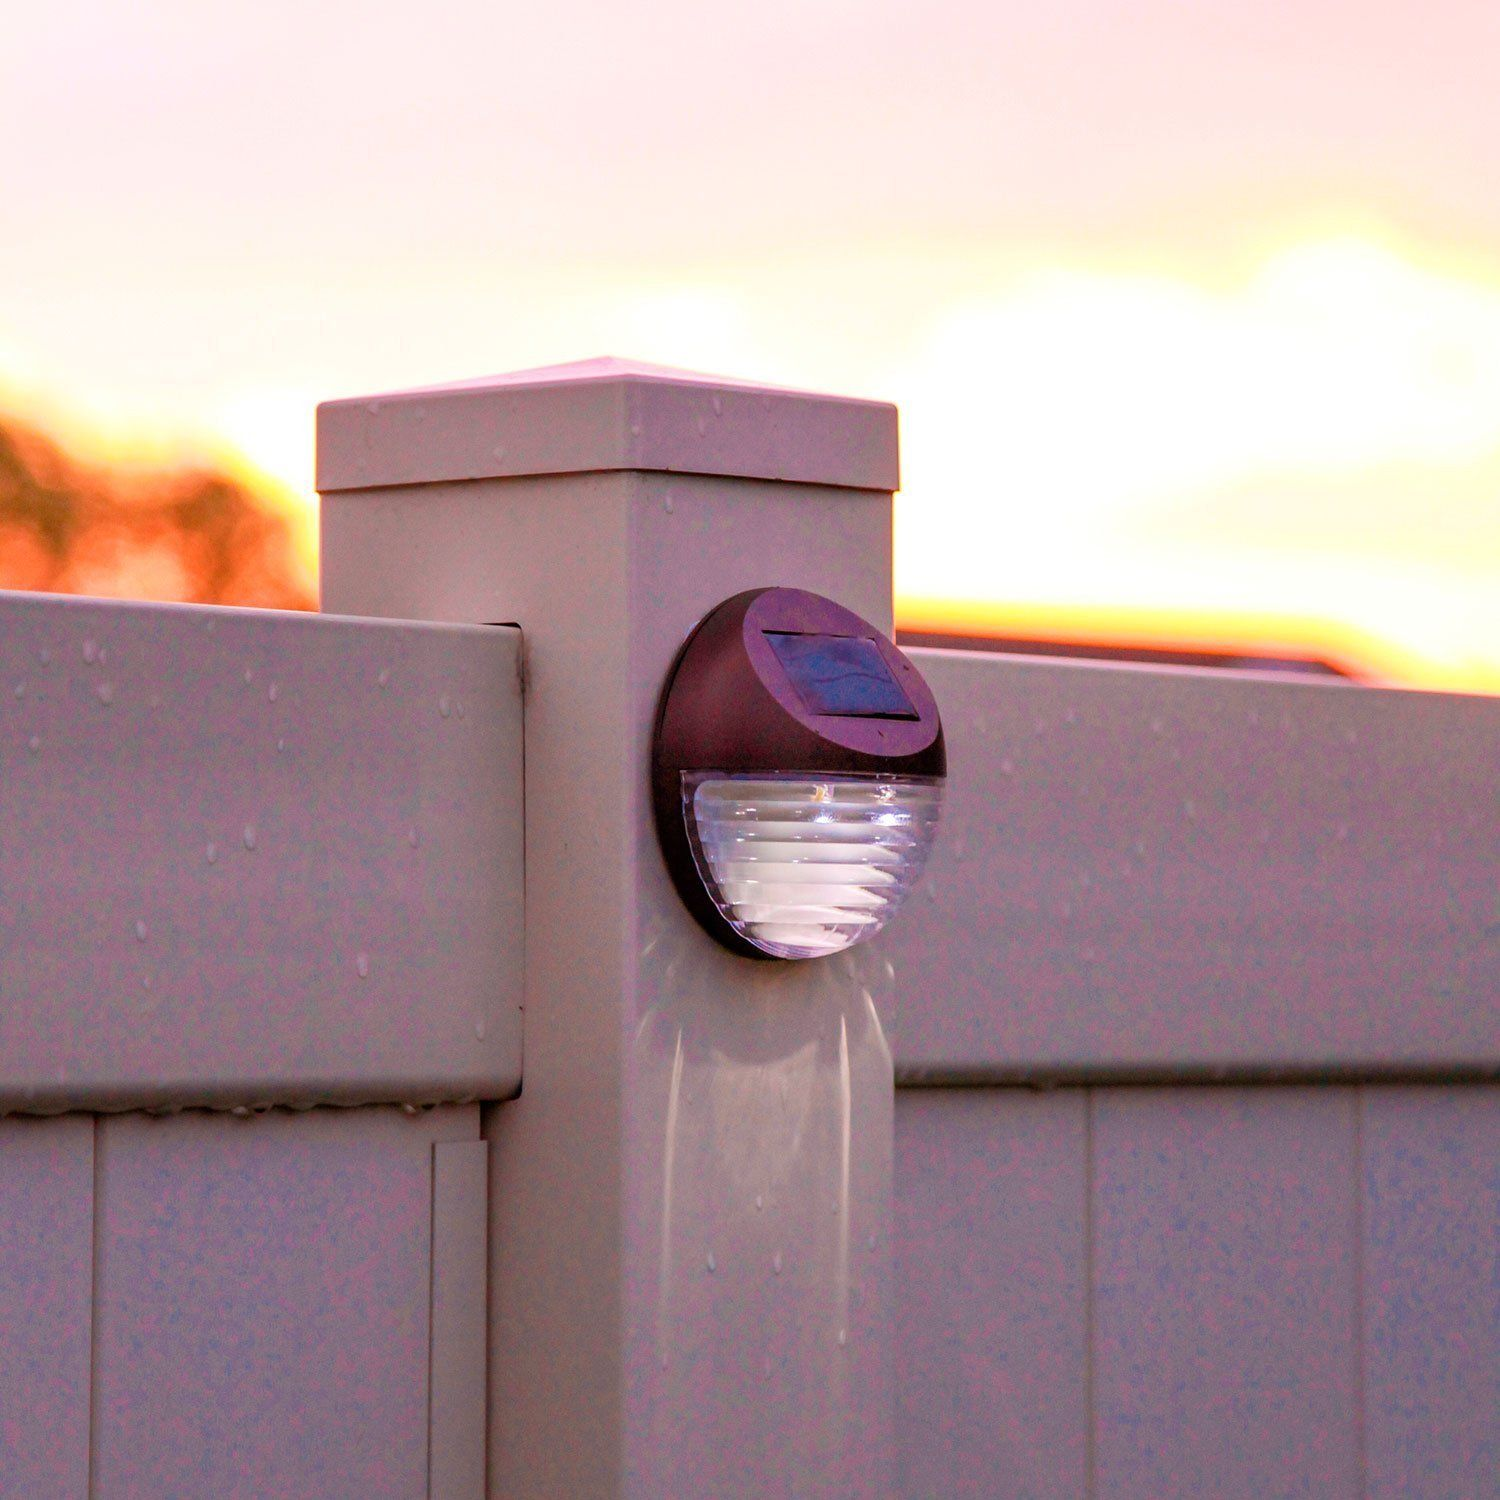 Solar Lights To Hang On Fence: These Solar Fence Lights Are The Perfect Outdoor Lighting